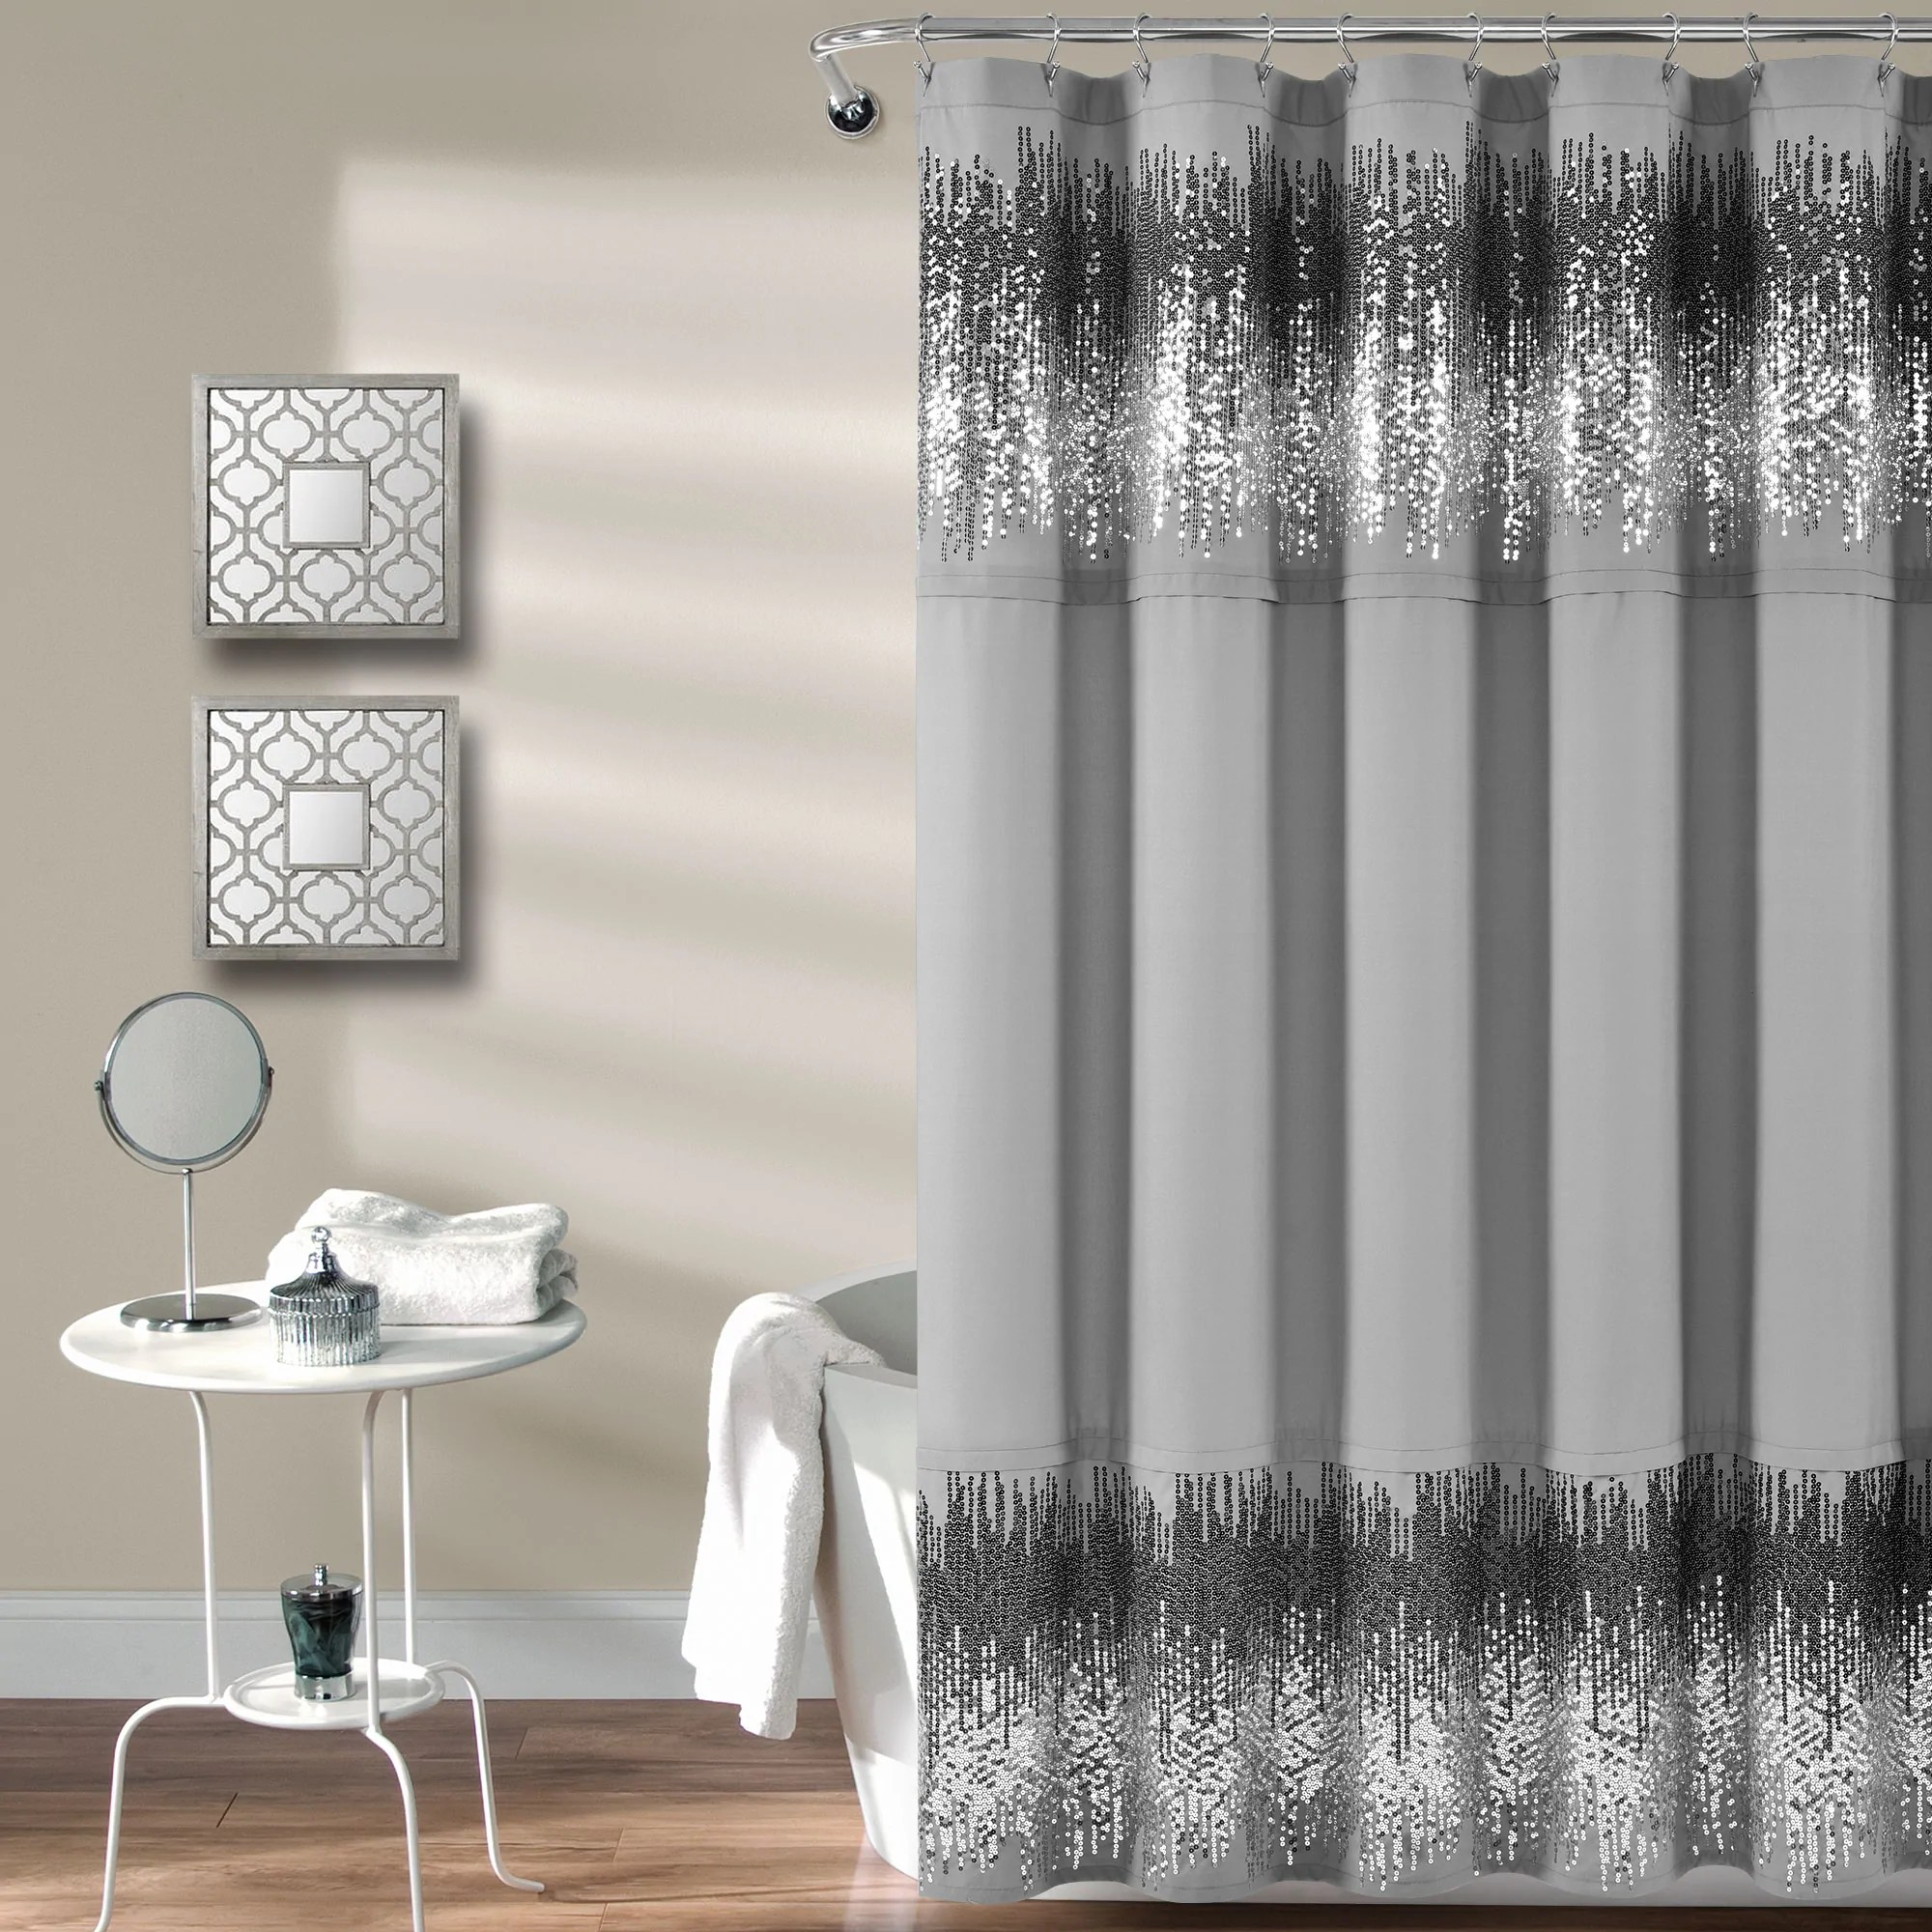 shimmer sequins shower curtain 70 x 72 gray black